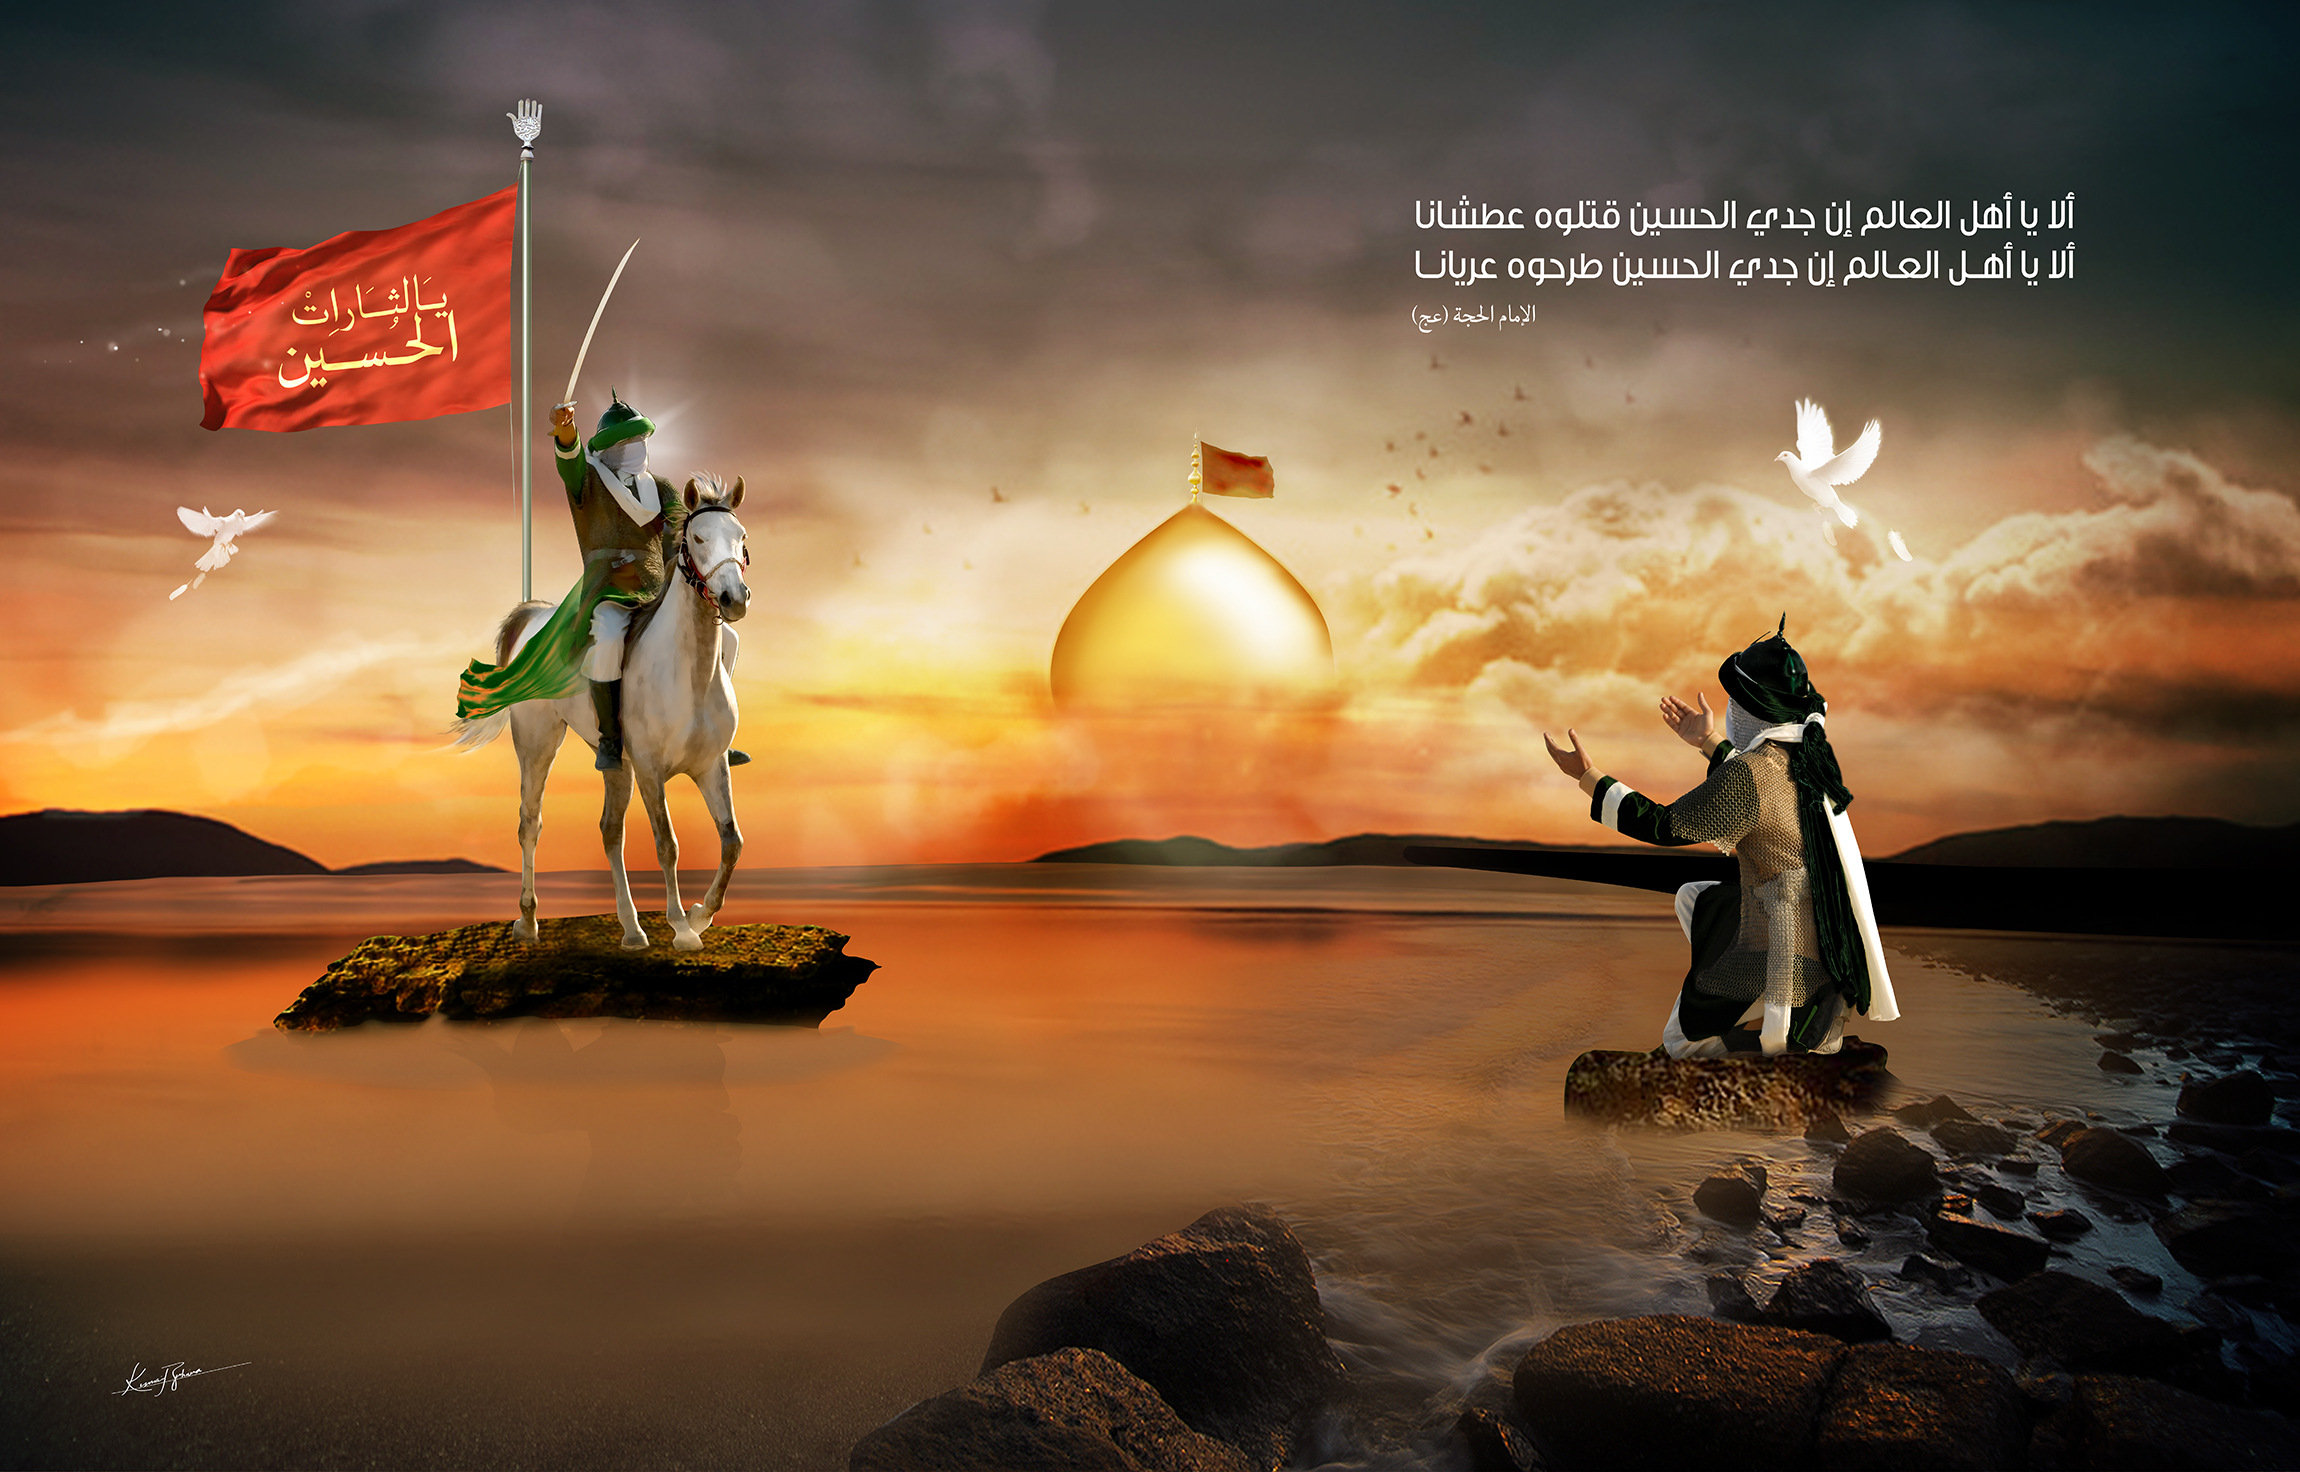 life and teachings of imam hussain Stand with dignity: hussain (husayn, husain, hussein) was martyred on the day of ashura, the 10th day of muharram in karbala, son of imam ali and grandson of prophet muhammad (saaw.